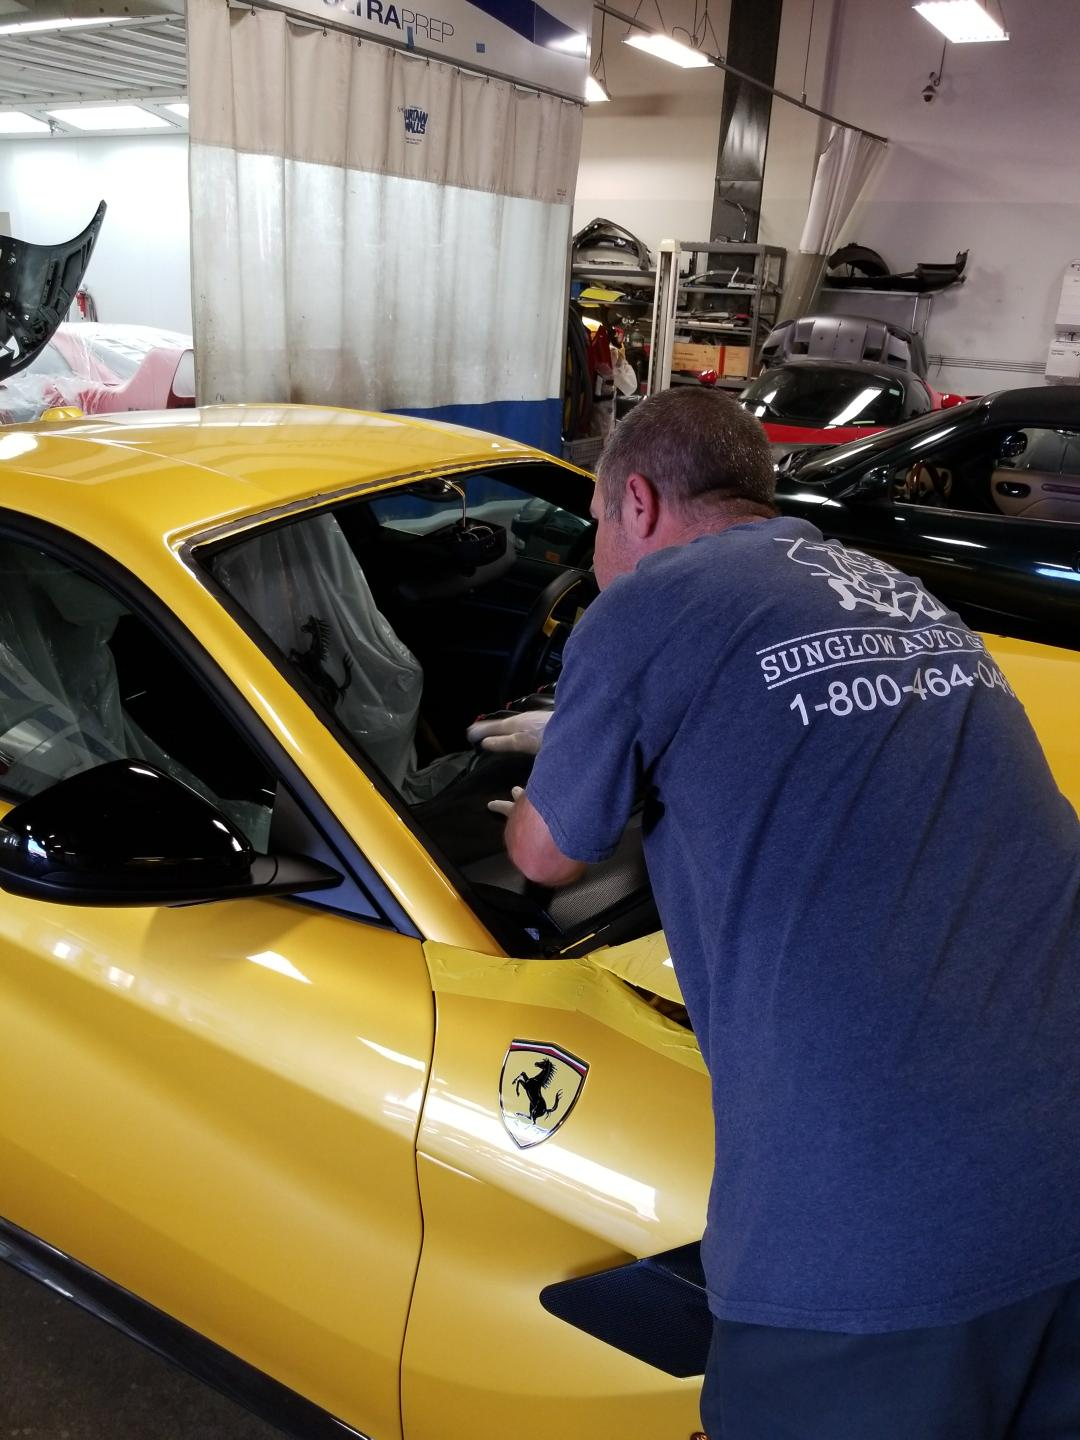 Sunglow Auto Glass Auto Glass Repair & Replacements